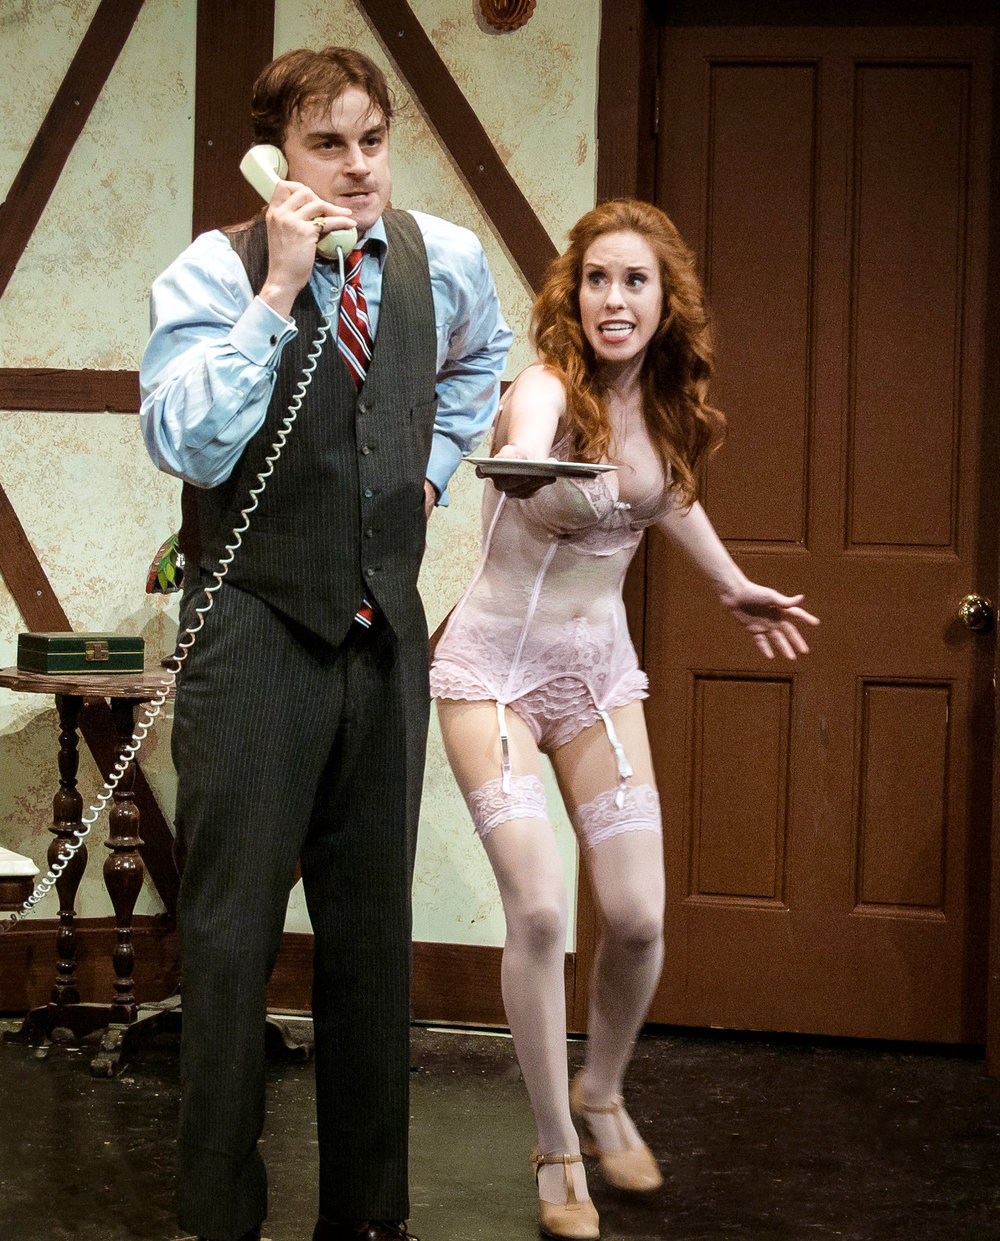 Noises Off-03872-cropped3.jpg